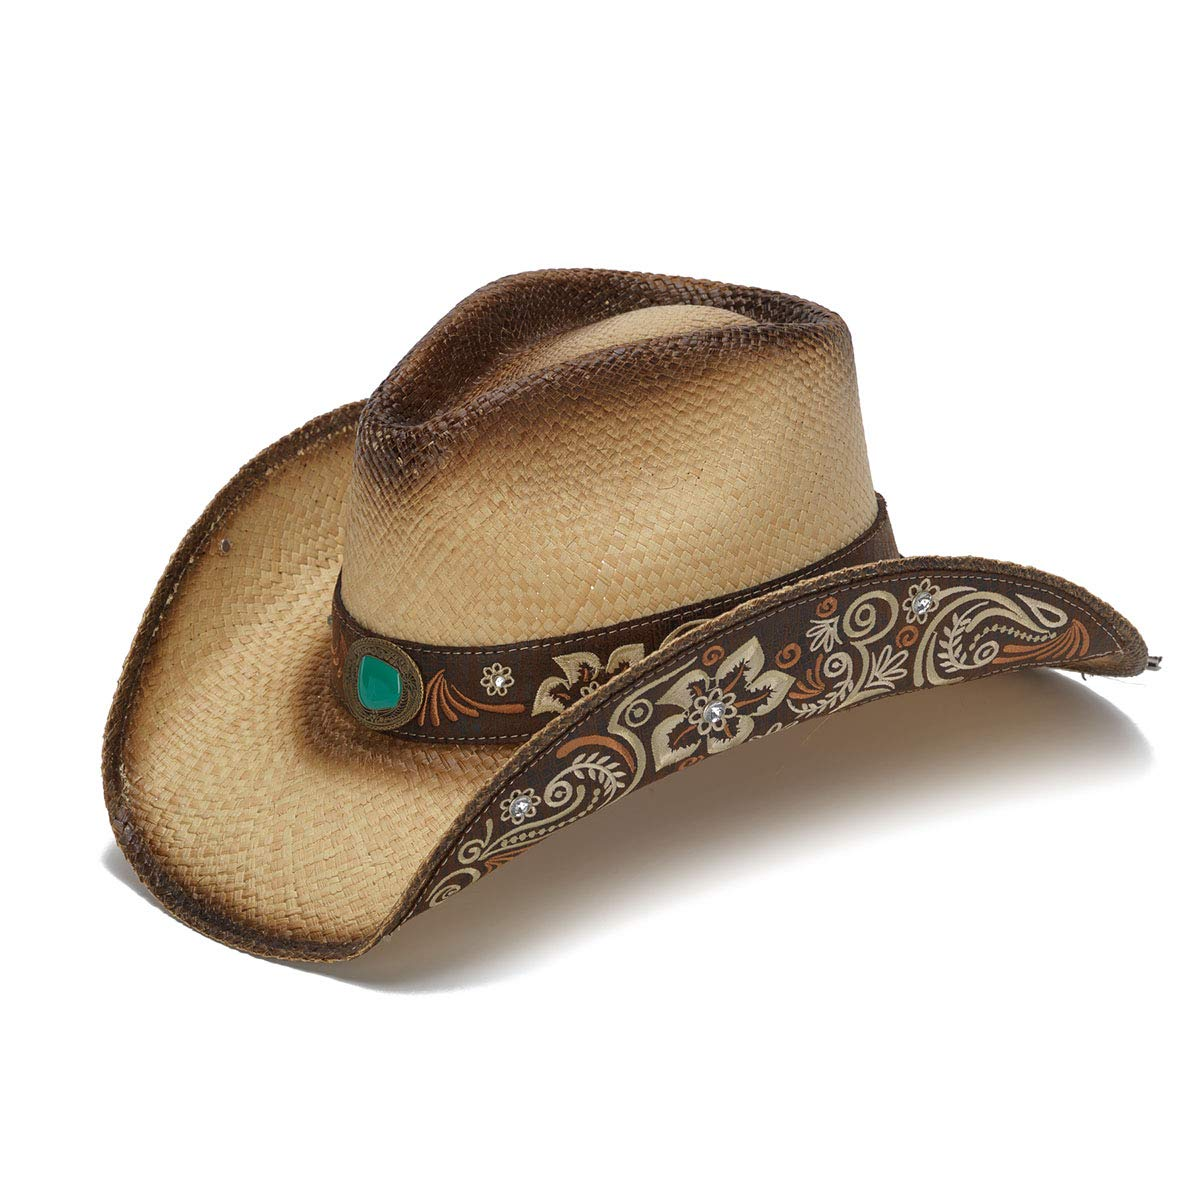 Stampede Hats Women's Sky Action Floral Embroidered Western Hat S Tea Stain